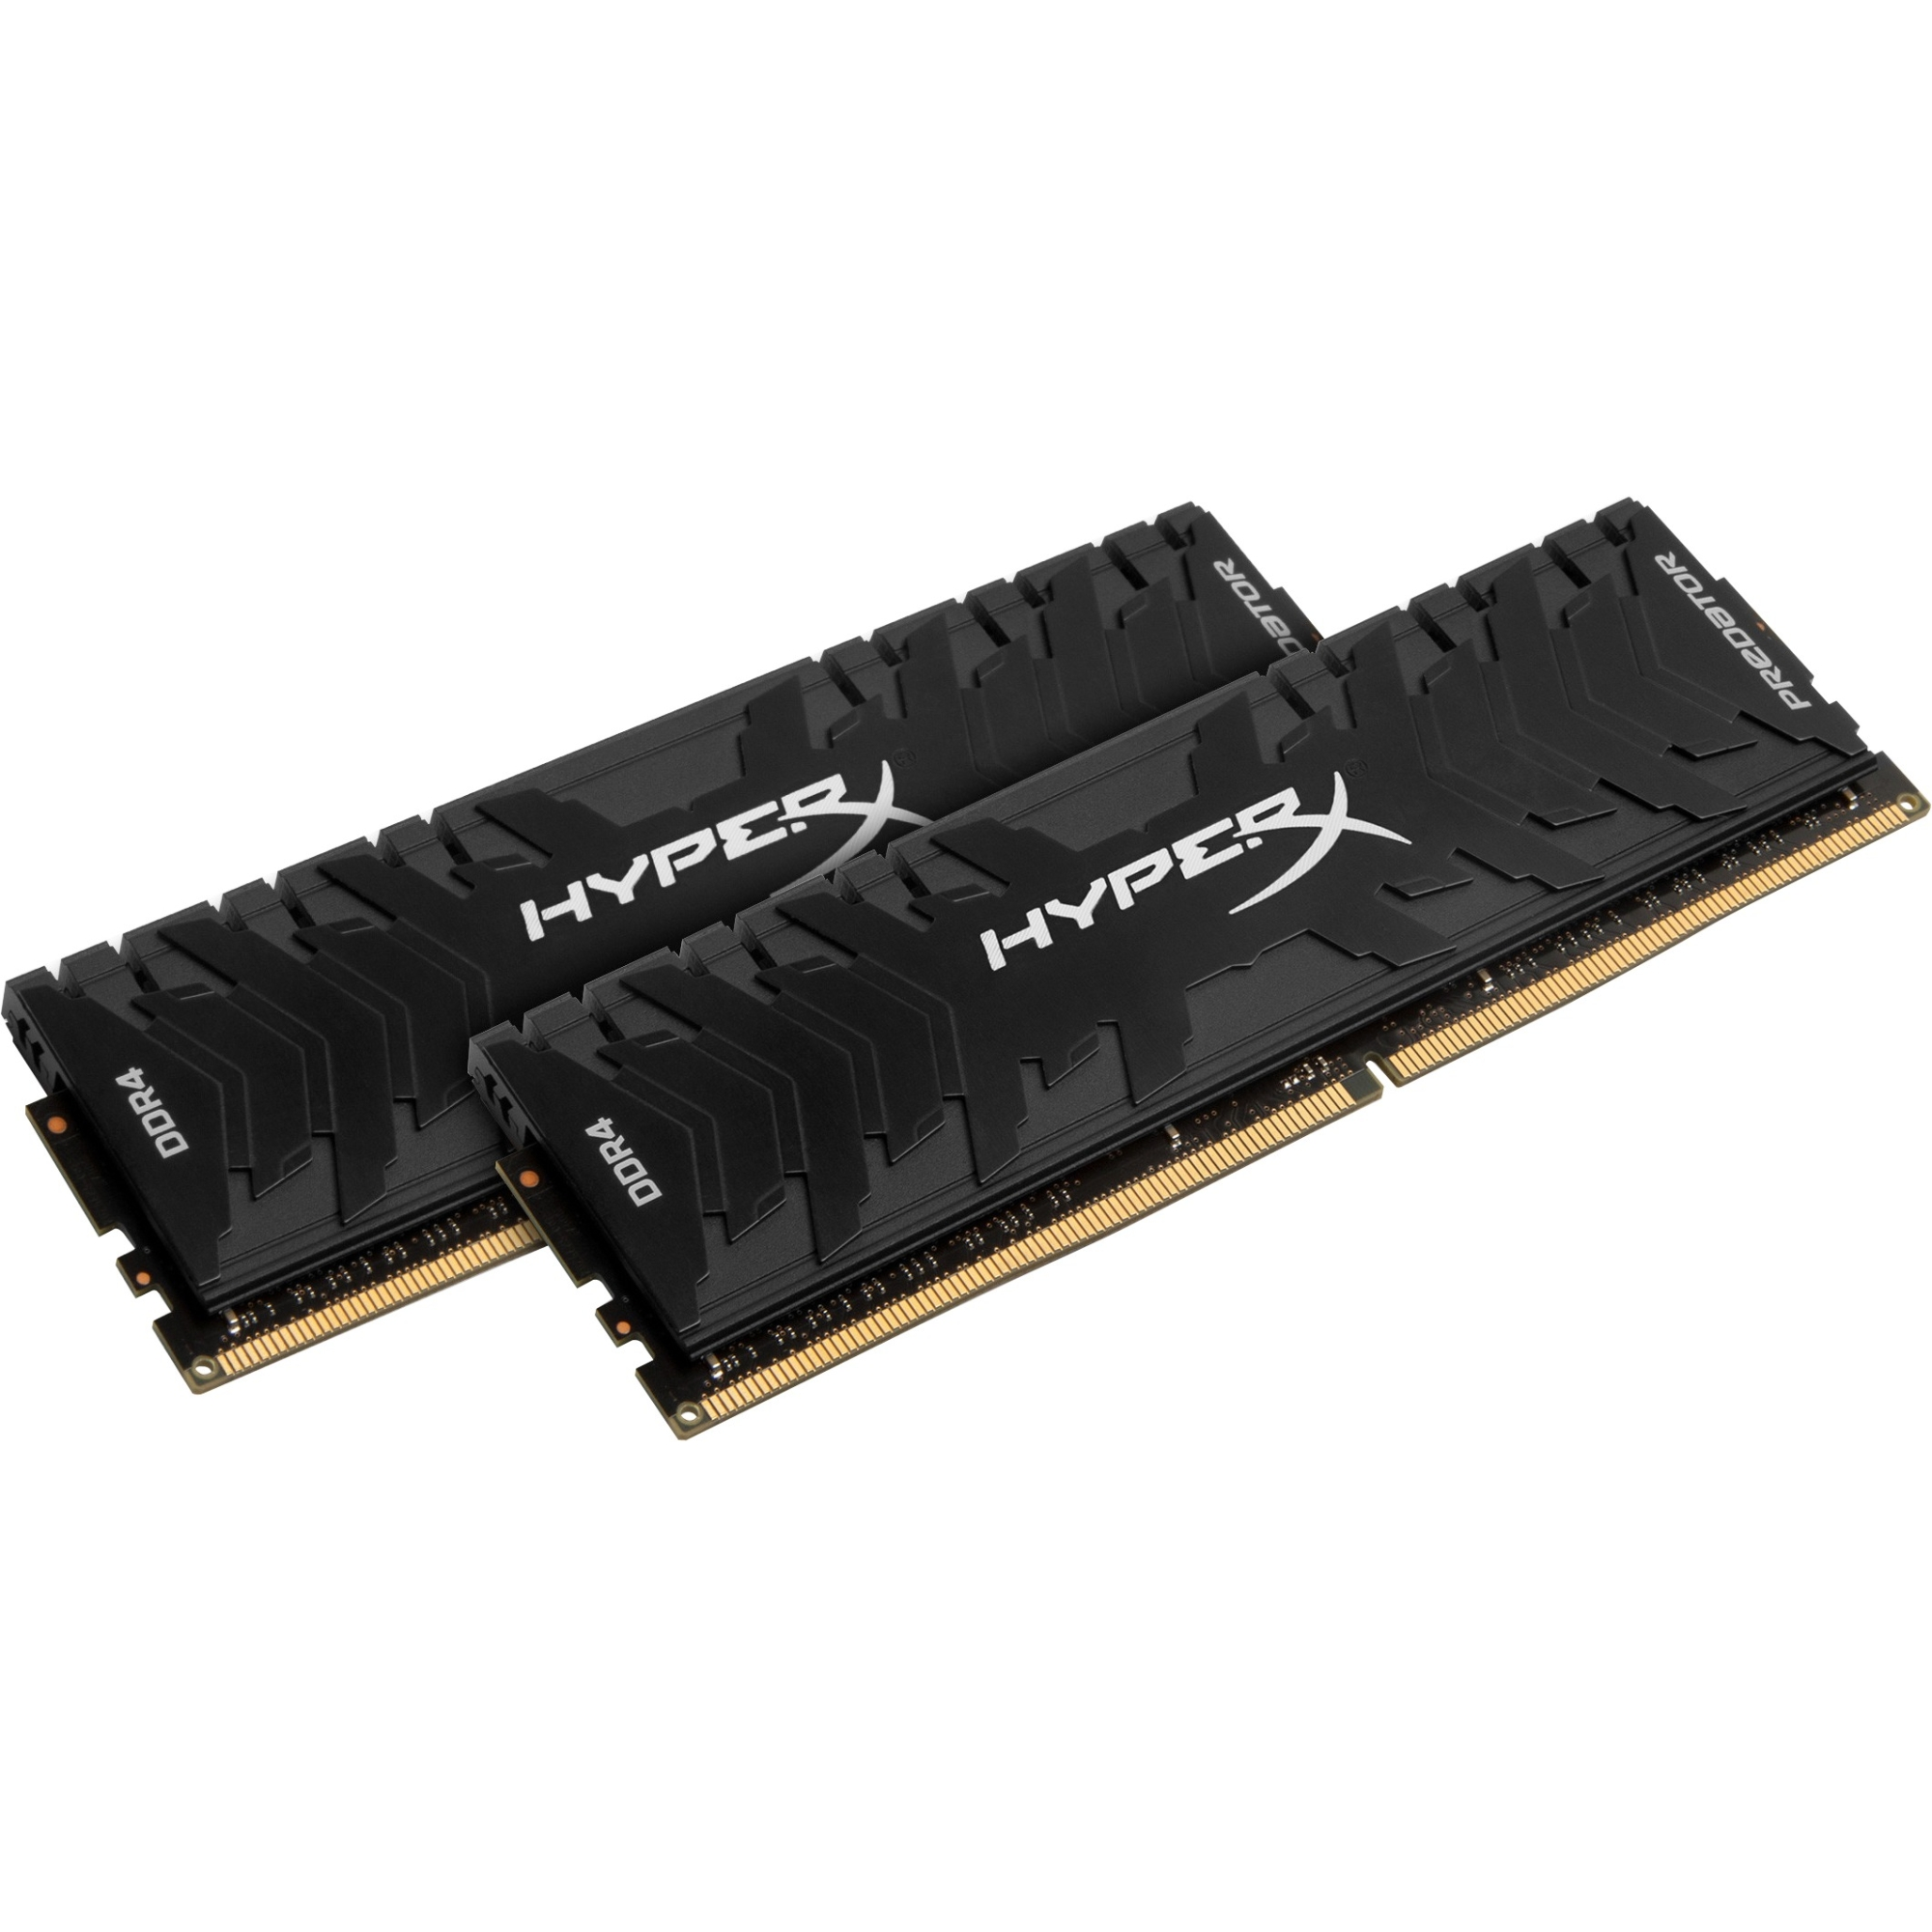 Kingston HyperX Predator 16GB DDR4 SDRAM Memory Module - 16 GB (2 x 8 GB) - DDR4 SDRAM - 3333 MHz DDR4-3333/PC4-26600